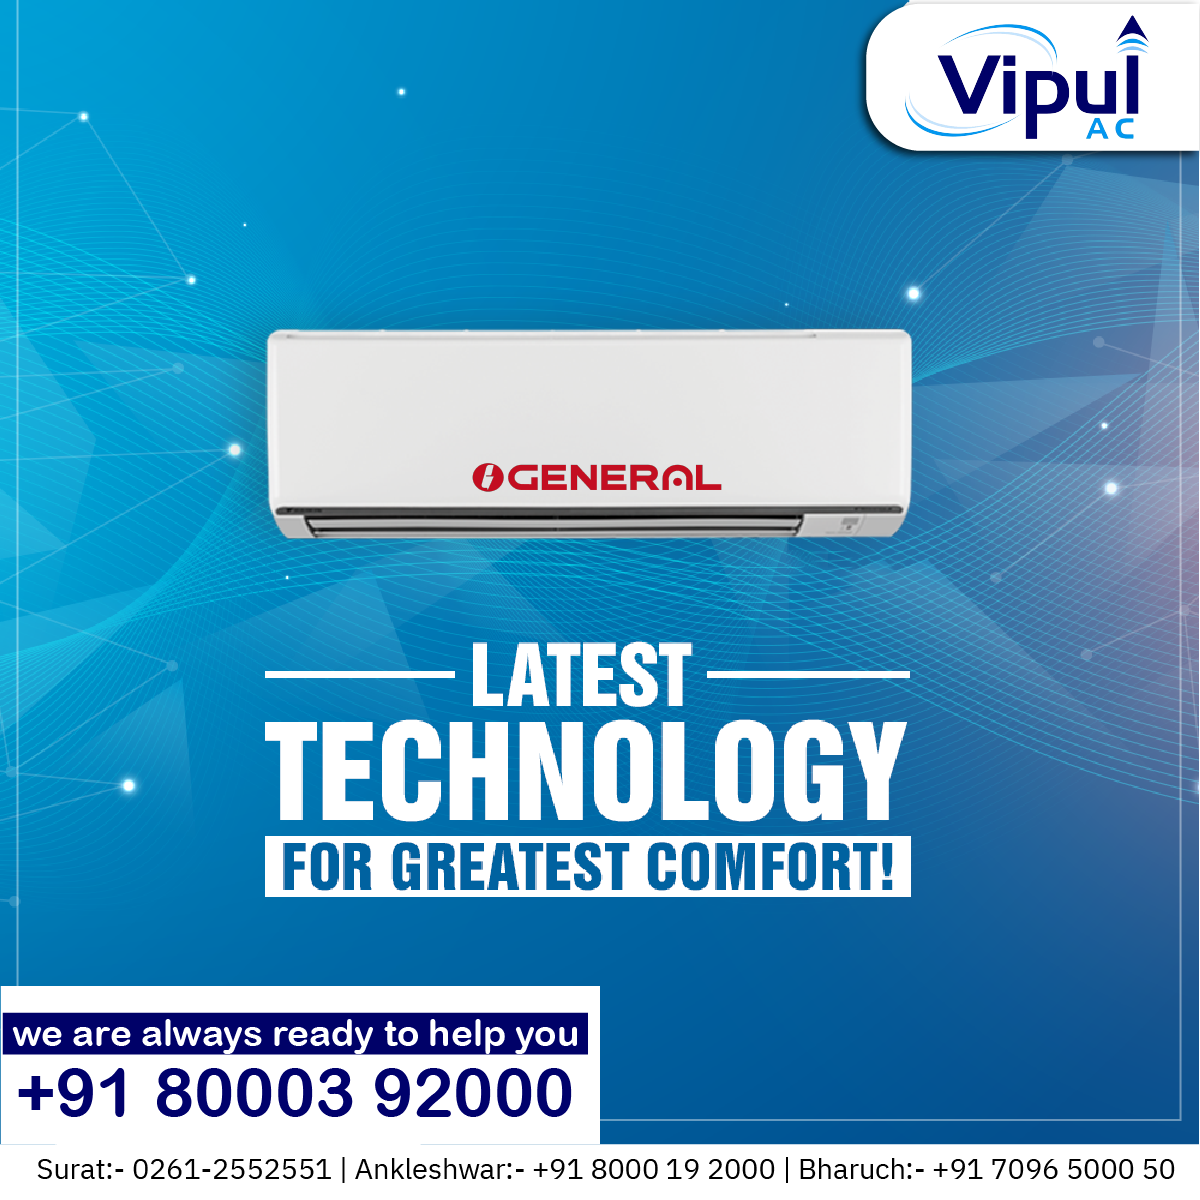 Latest Technology for Greatest Comfort! Vipul Ac in 2020